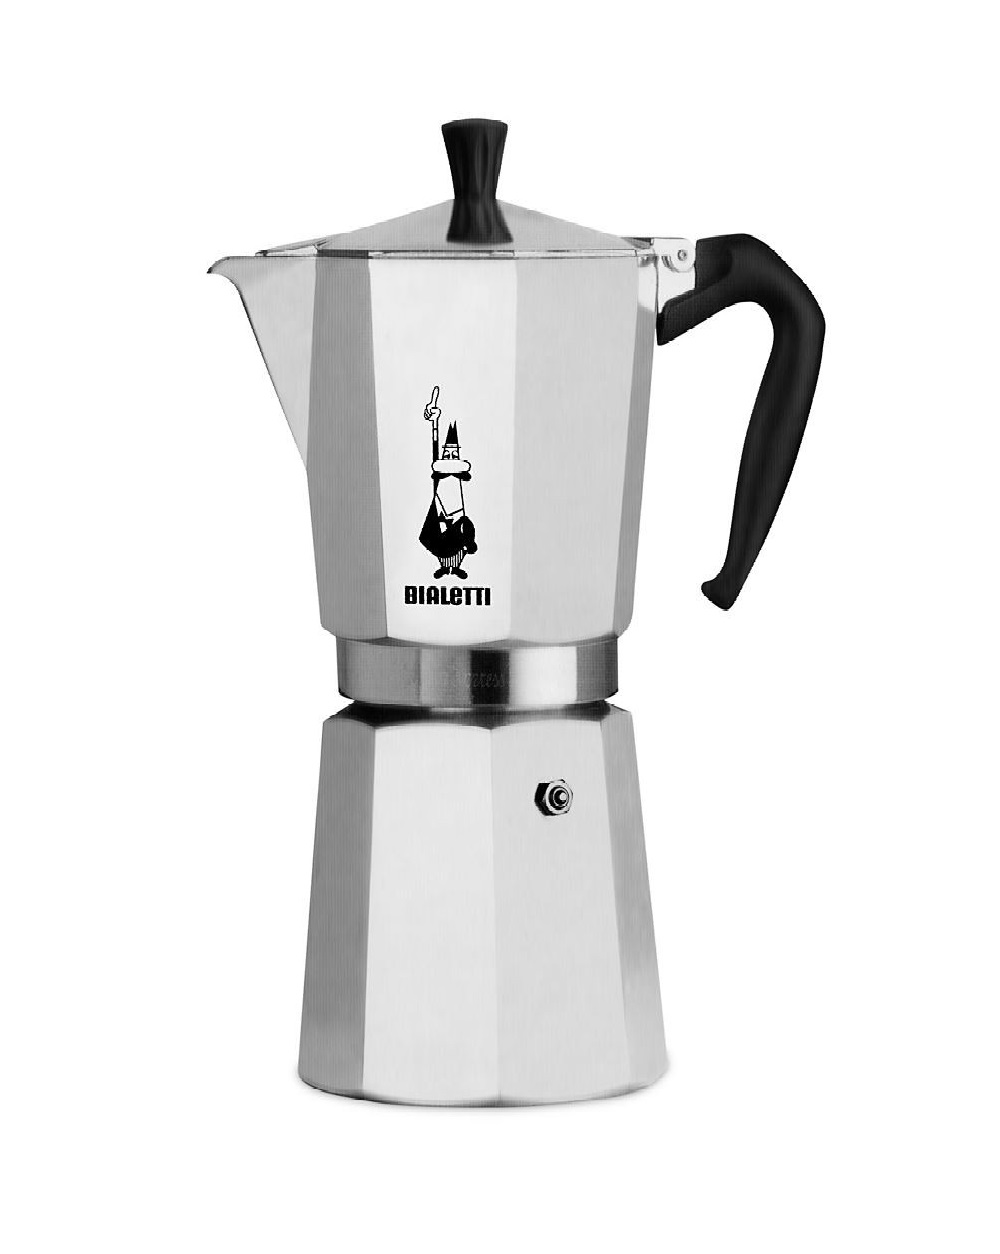 """La moka express"" coffee pot (Bialetti, 1933)"